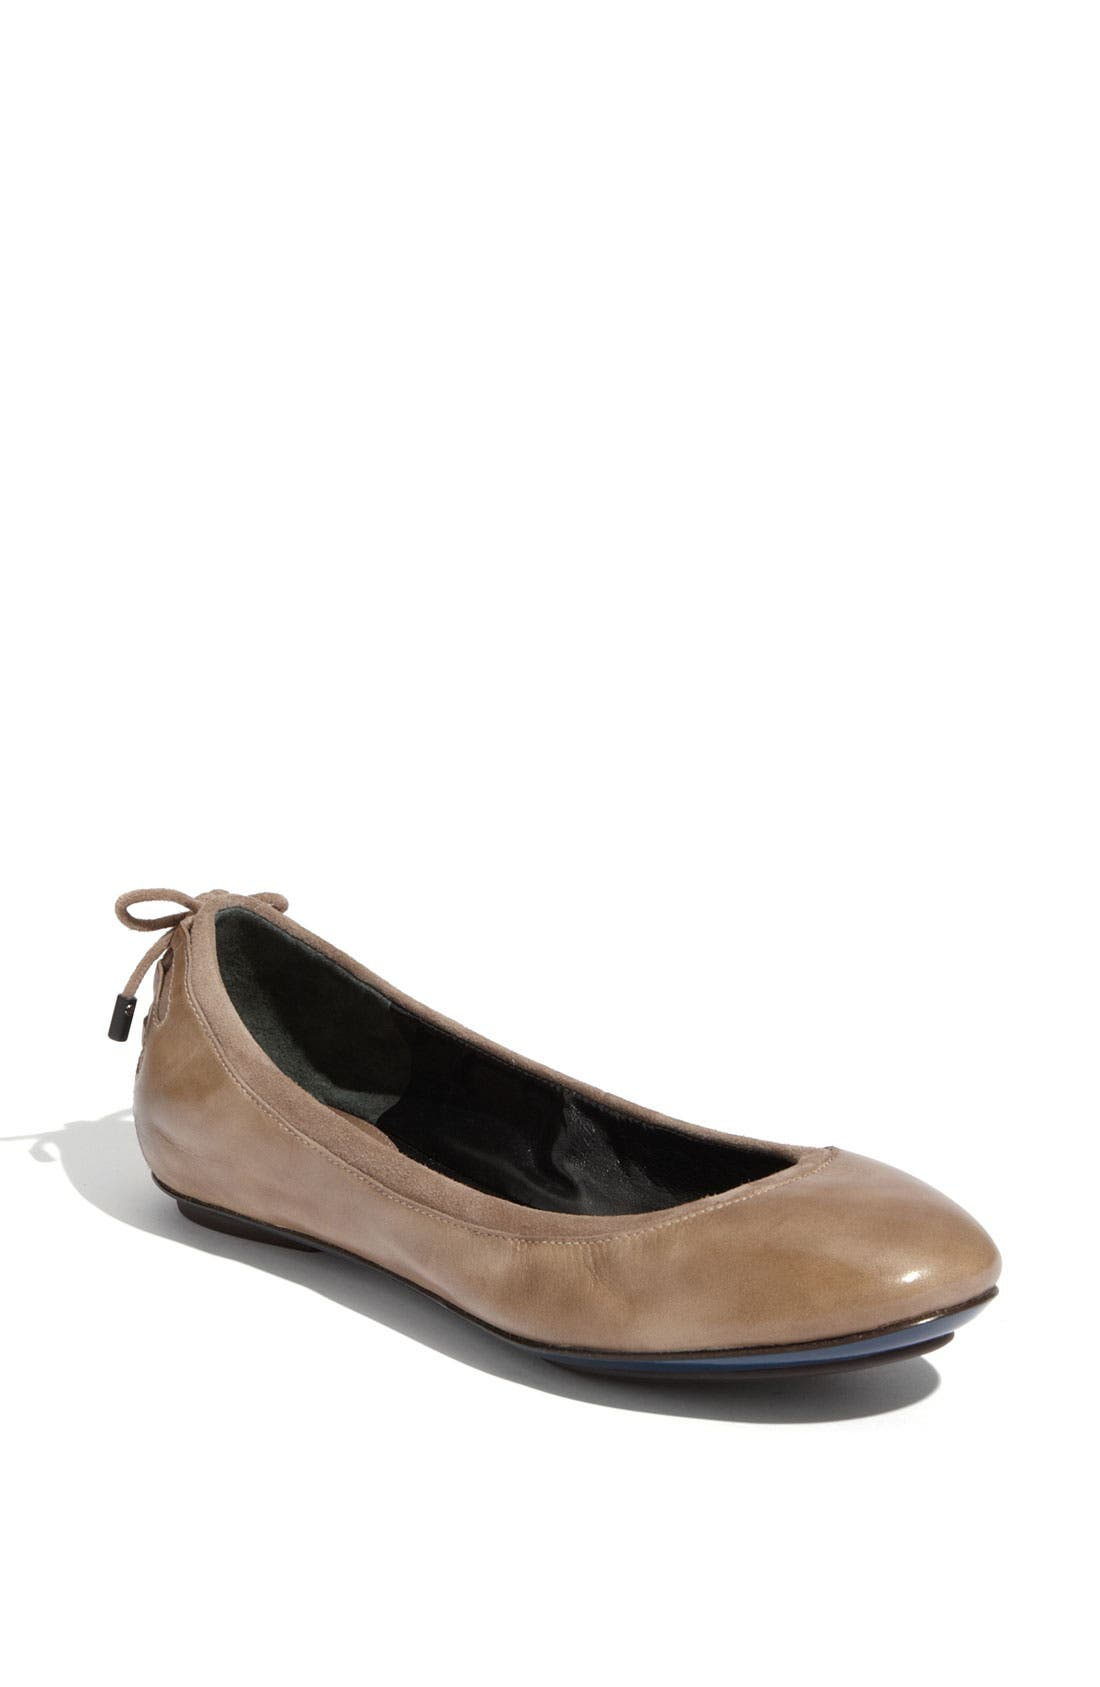 ,                             Maria Sharapova by Cole Haan 'Air Bacara' Flat,                             Main thumbnail 6, color,                             020